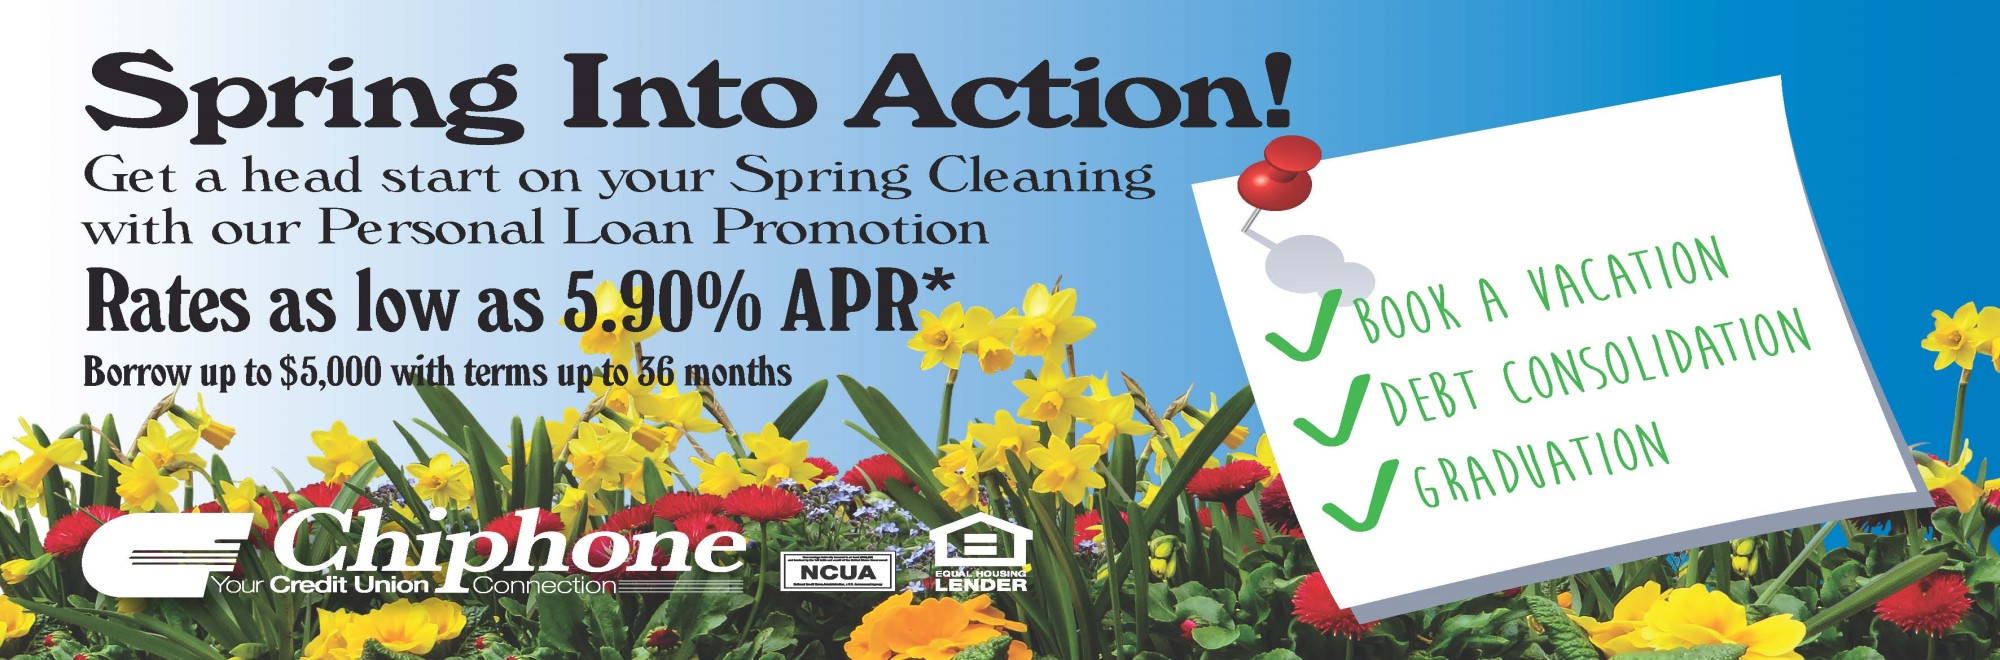 SPRING INTO ACTION – PERSONAL LOAN PROMOTION